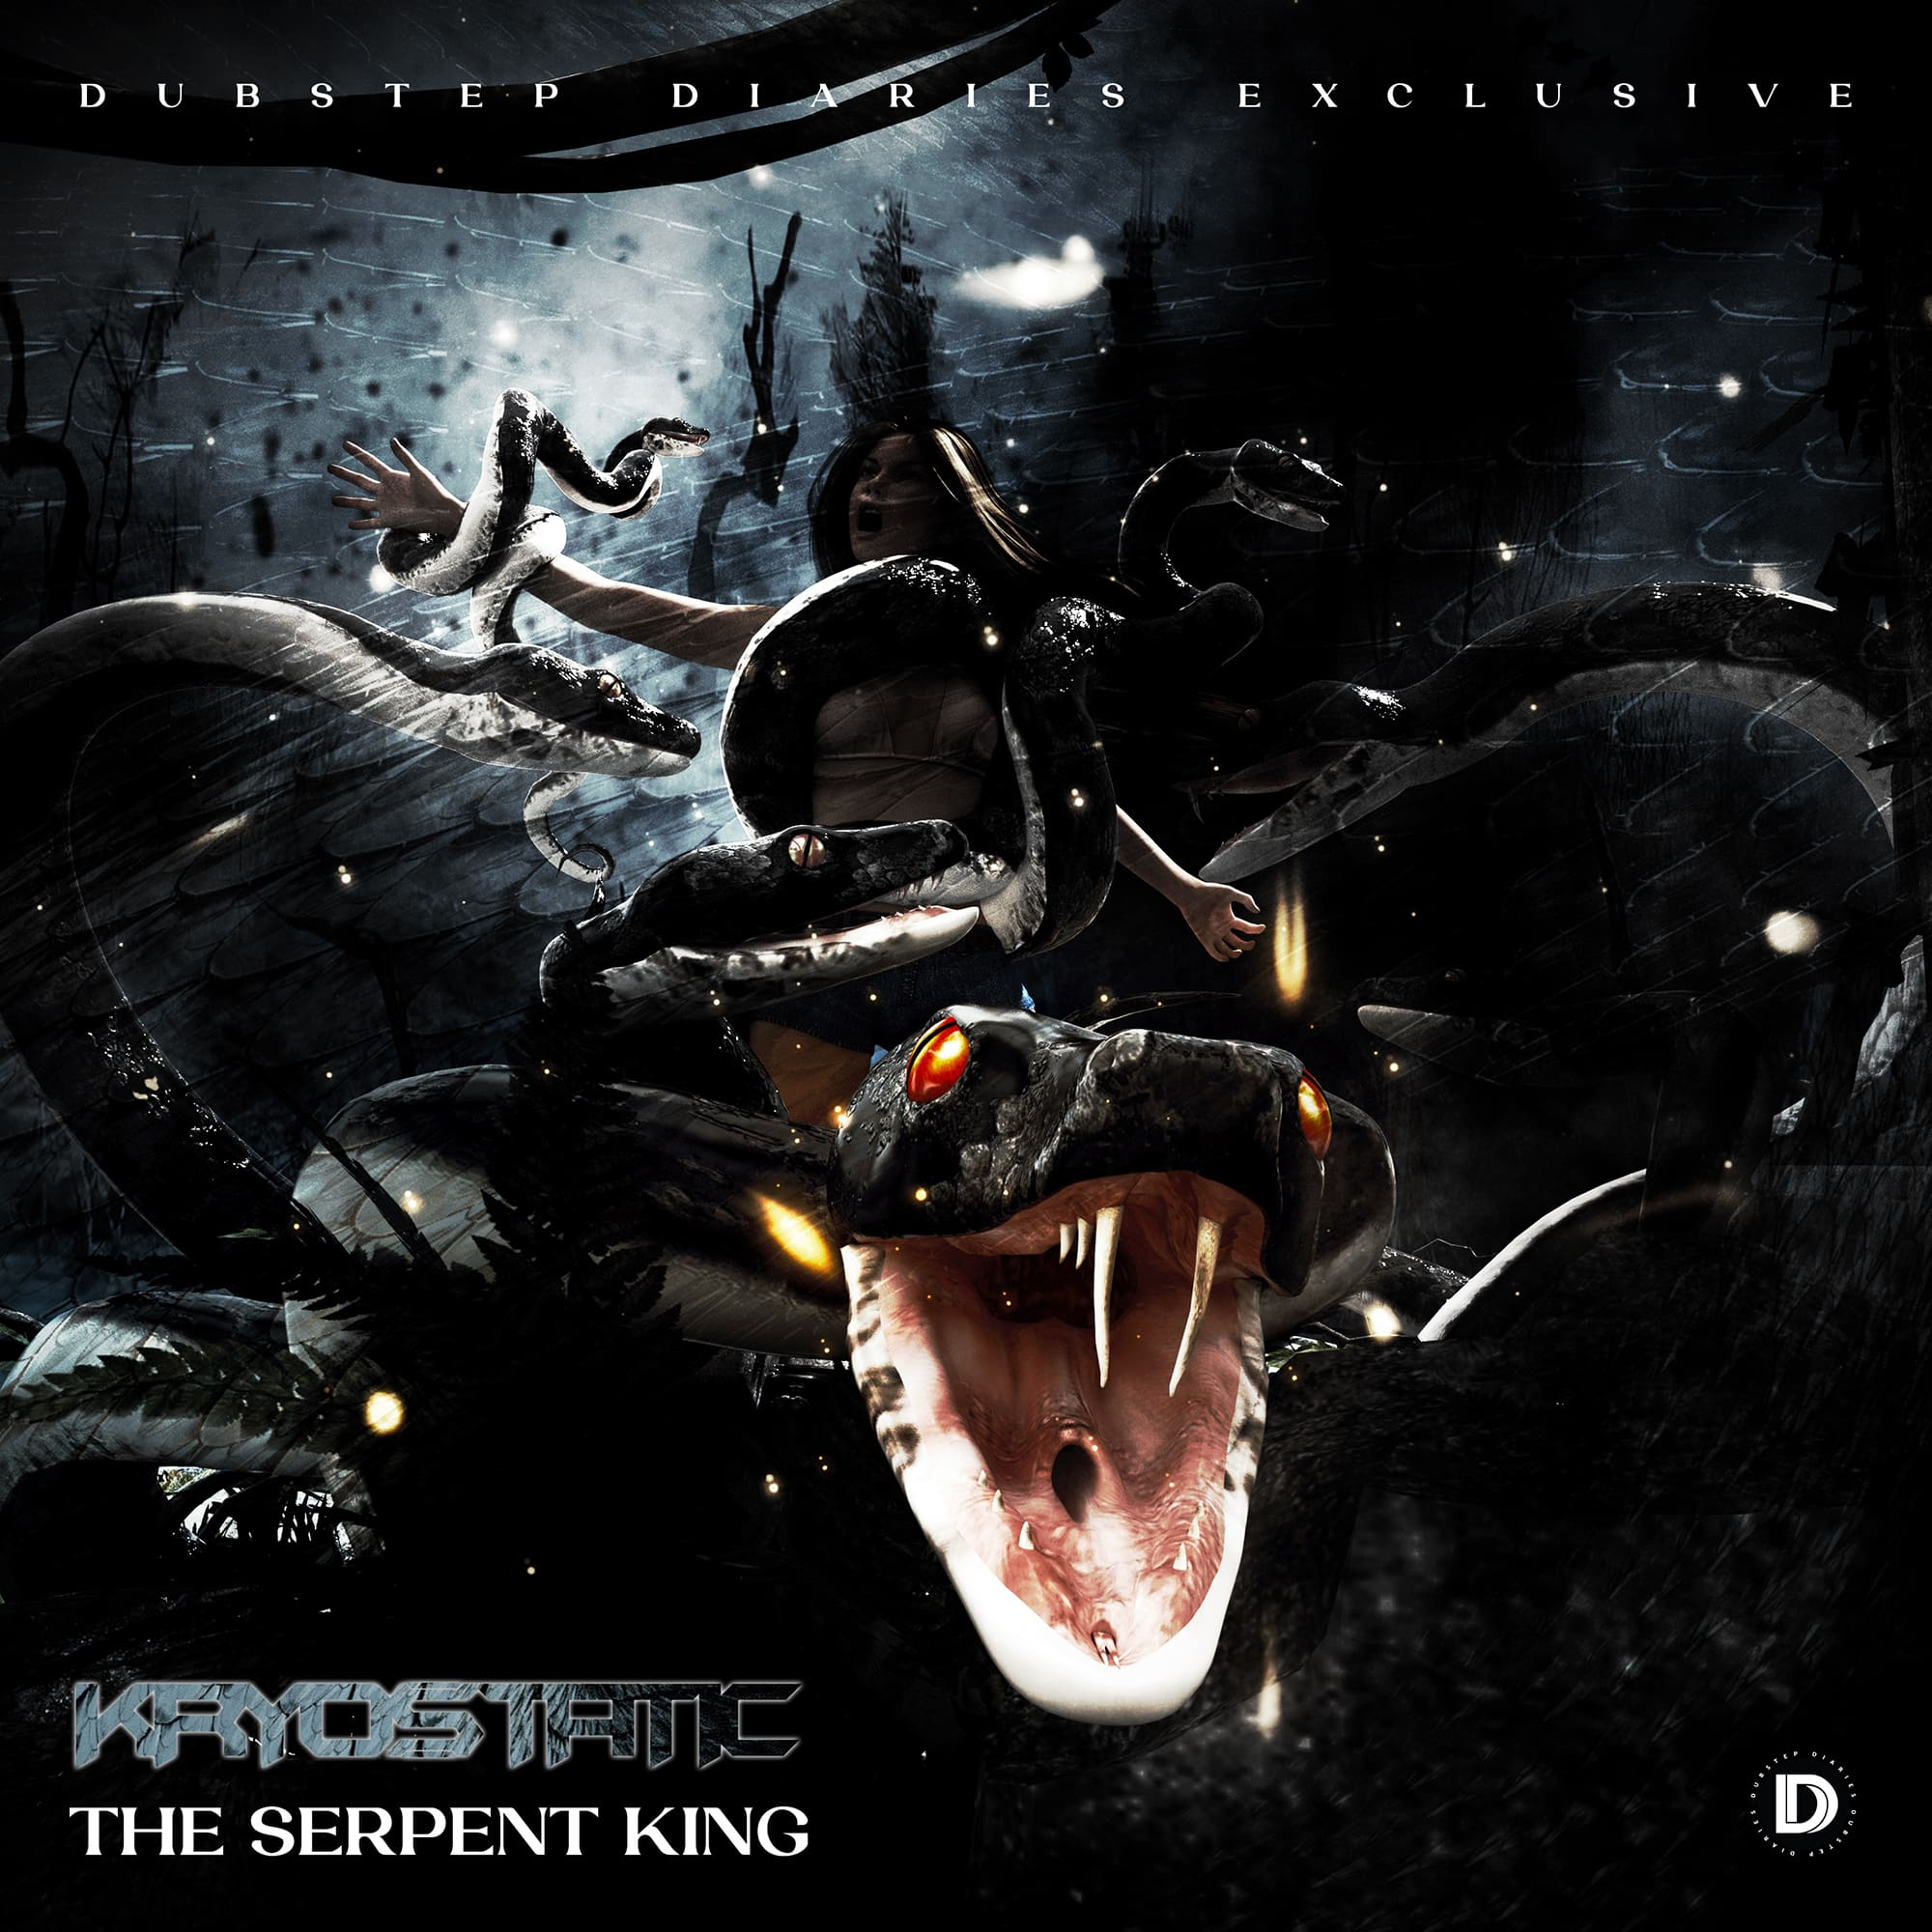 Kryostatic - The Serpent King EP